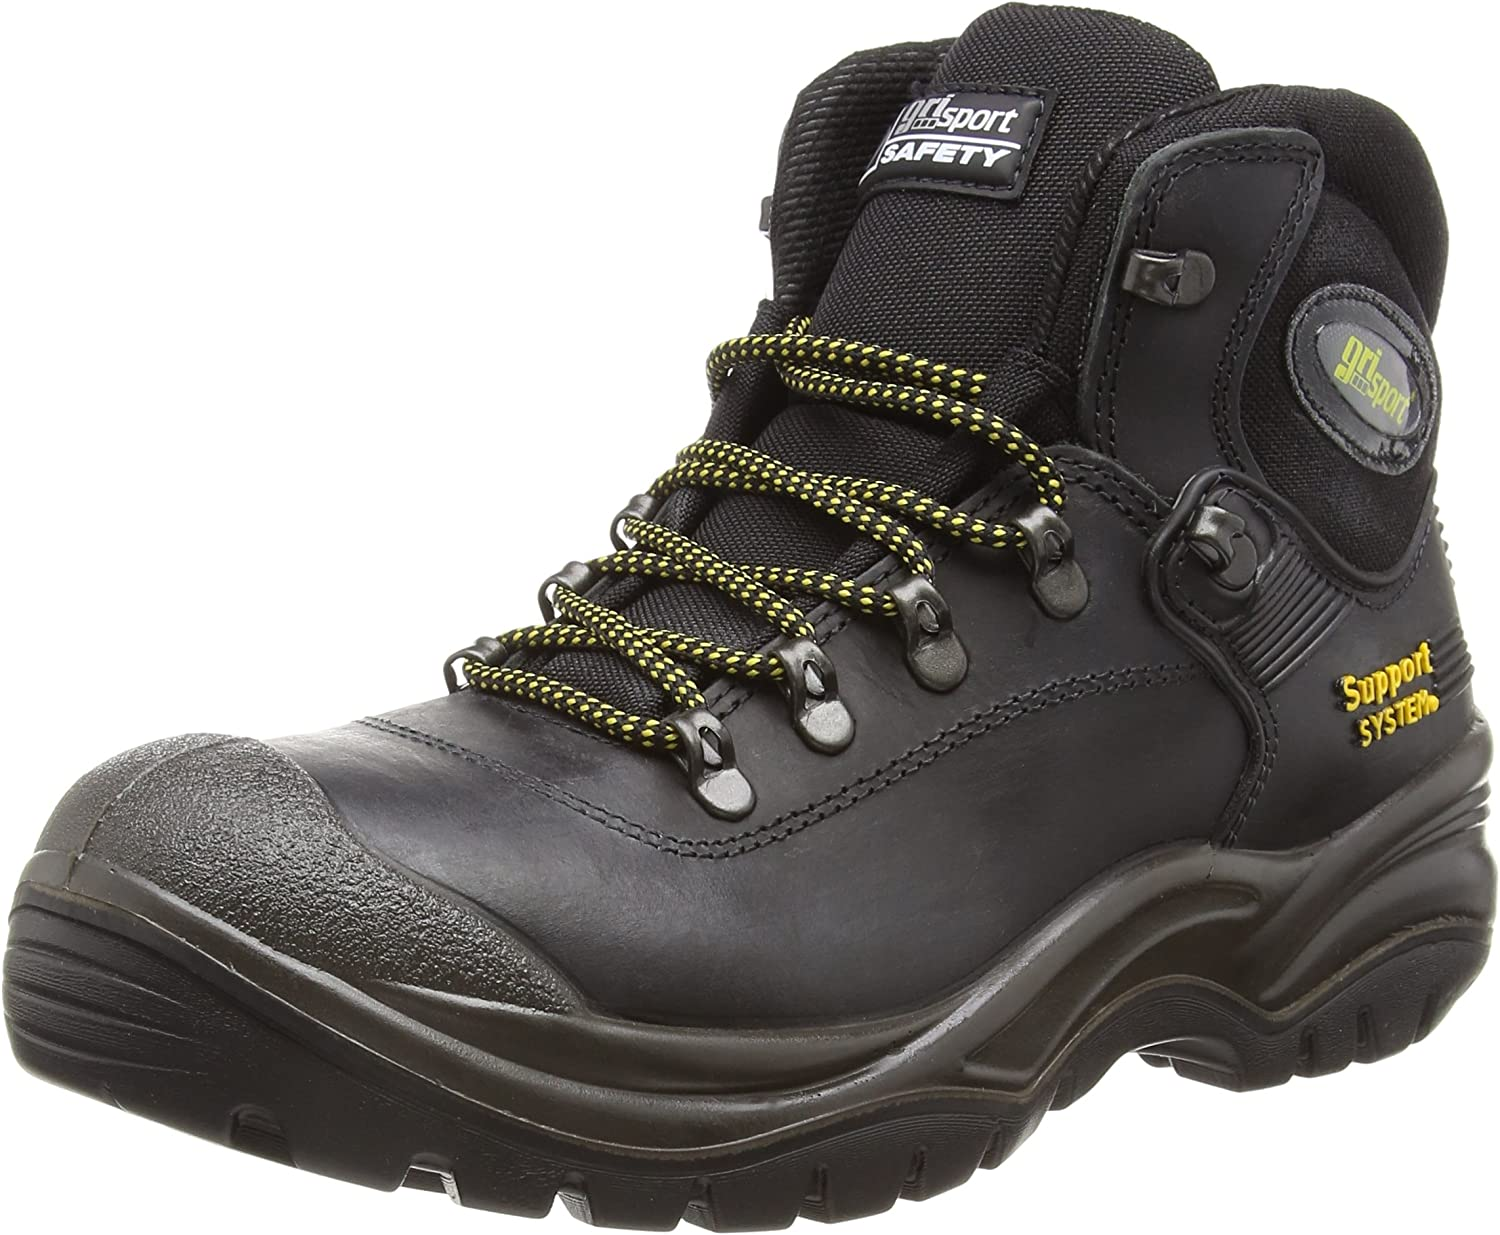 greyport Contractor Italian Safety Boot S3-HRO-HI-SRC in Black